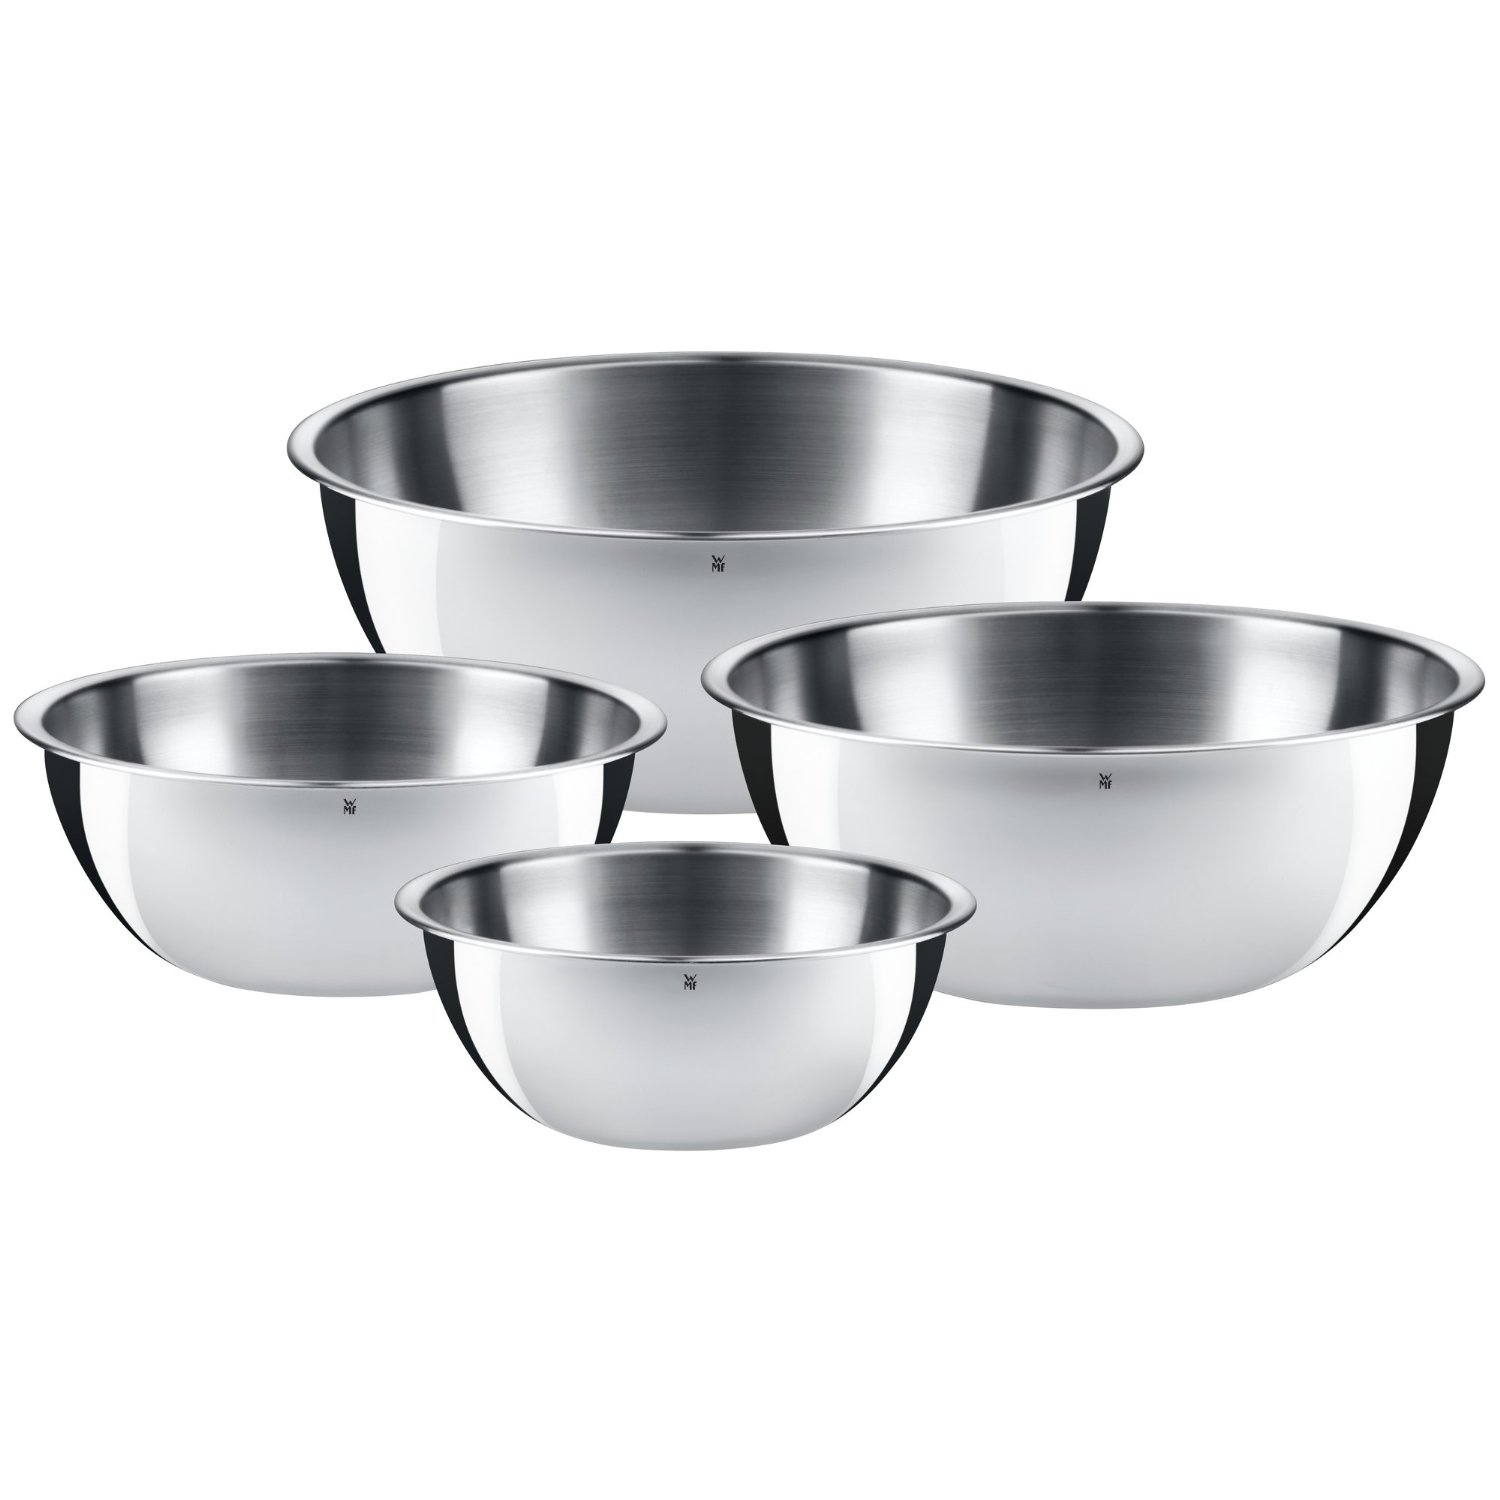 Онлайн каталог PROMENU: Набор мисок, 4 пр WMF Kitchen And Mixing Bowls  (06 4570 9990) WMF 06 4570 9990